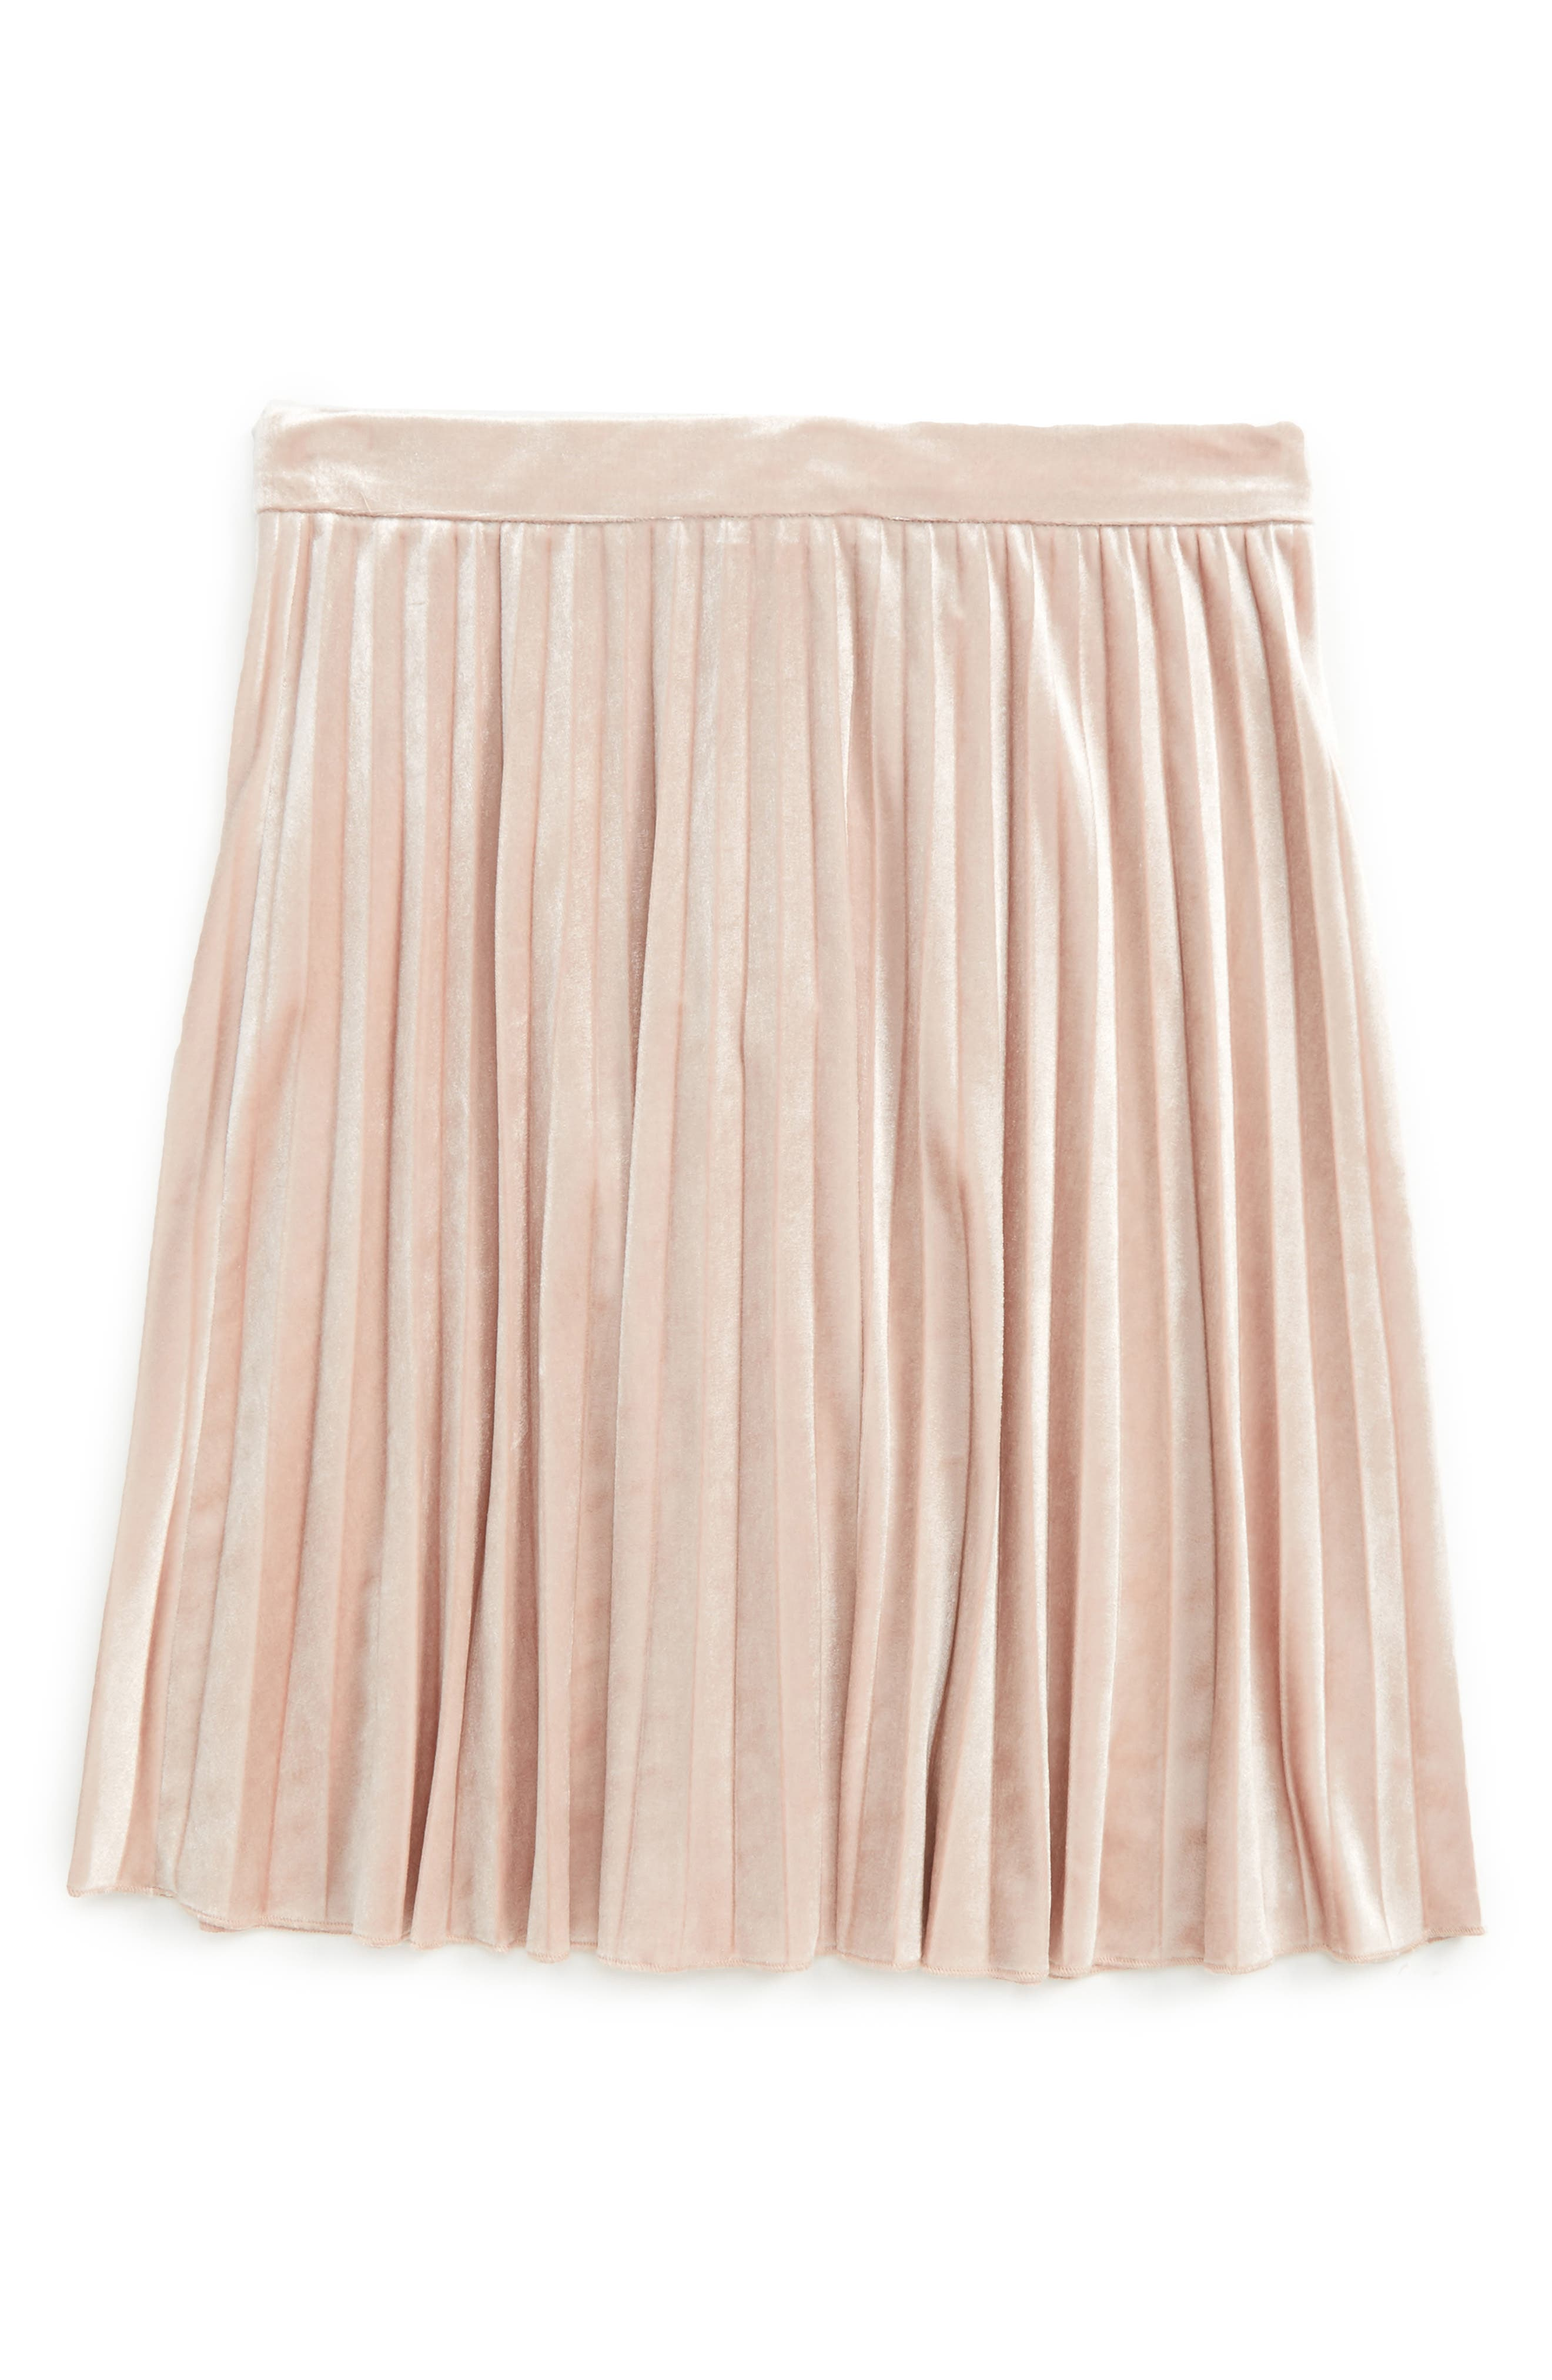 Alternate Image 1 Selected - Bardot Junior Velvet Pleated Skirt (Little Girls)